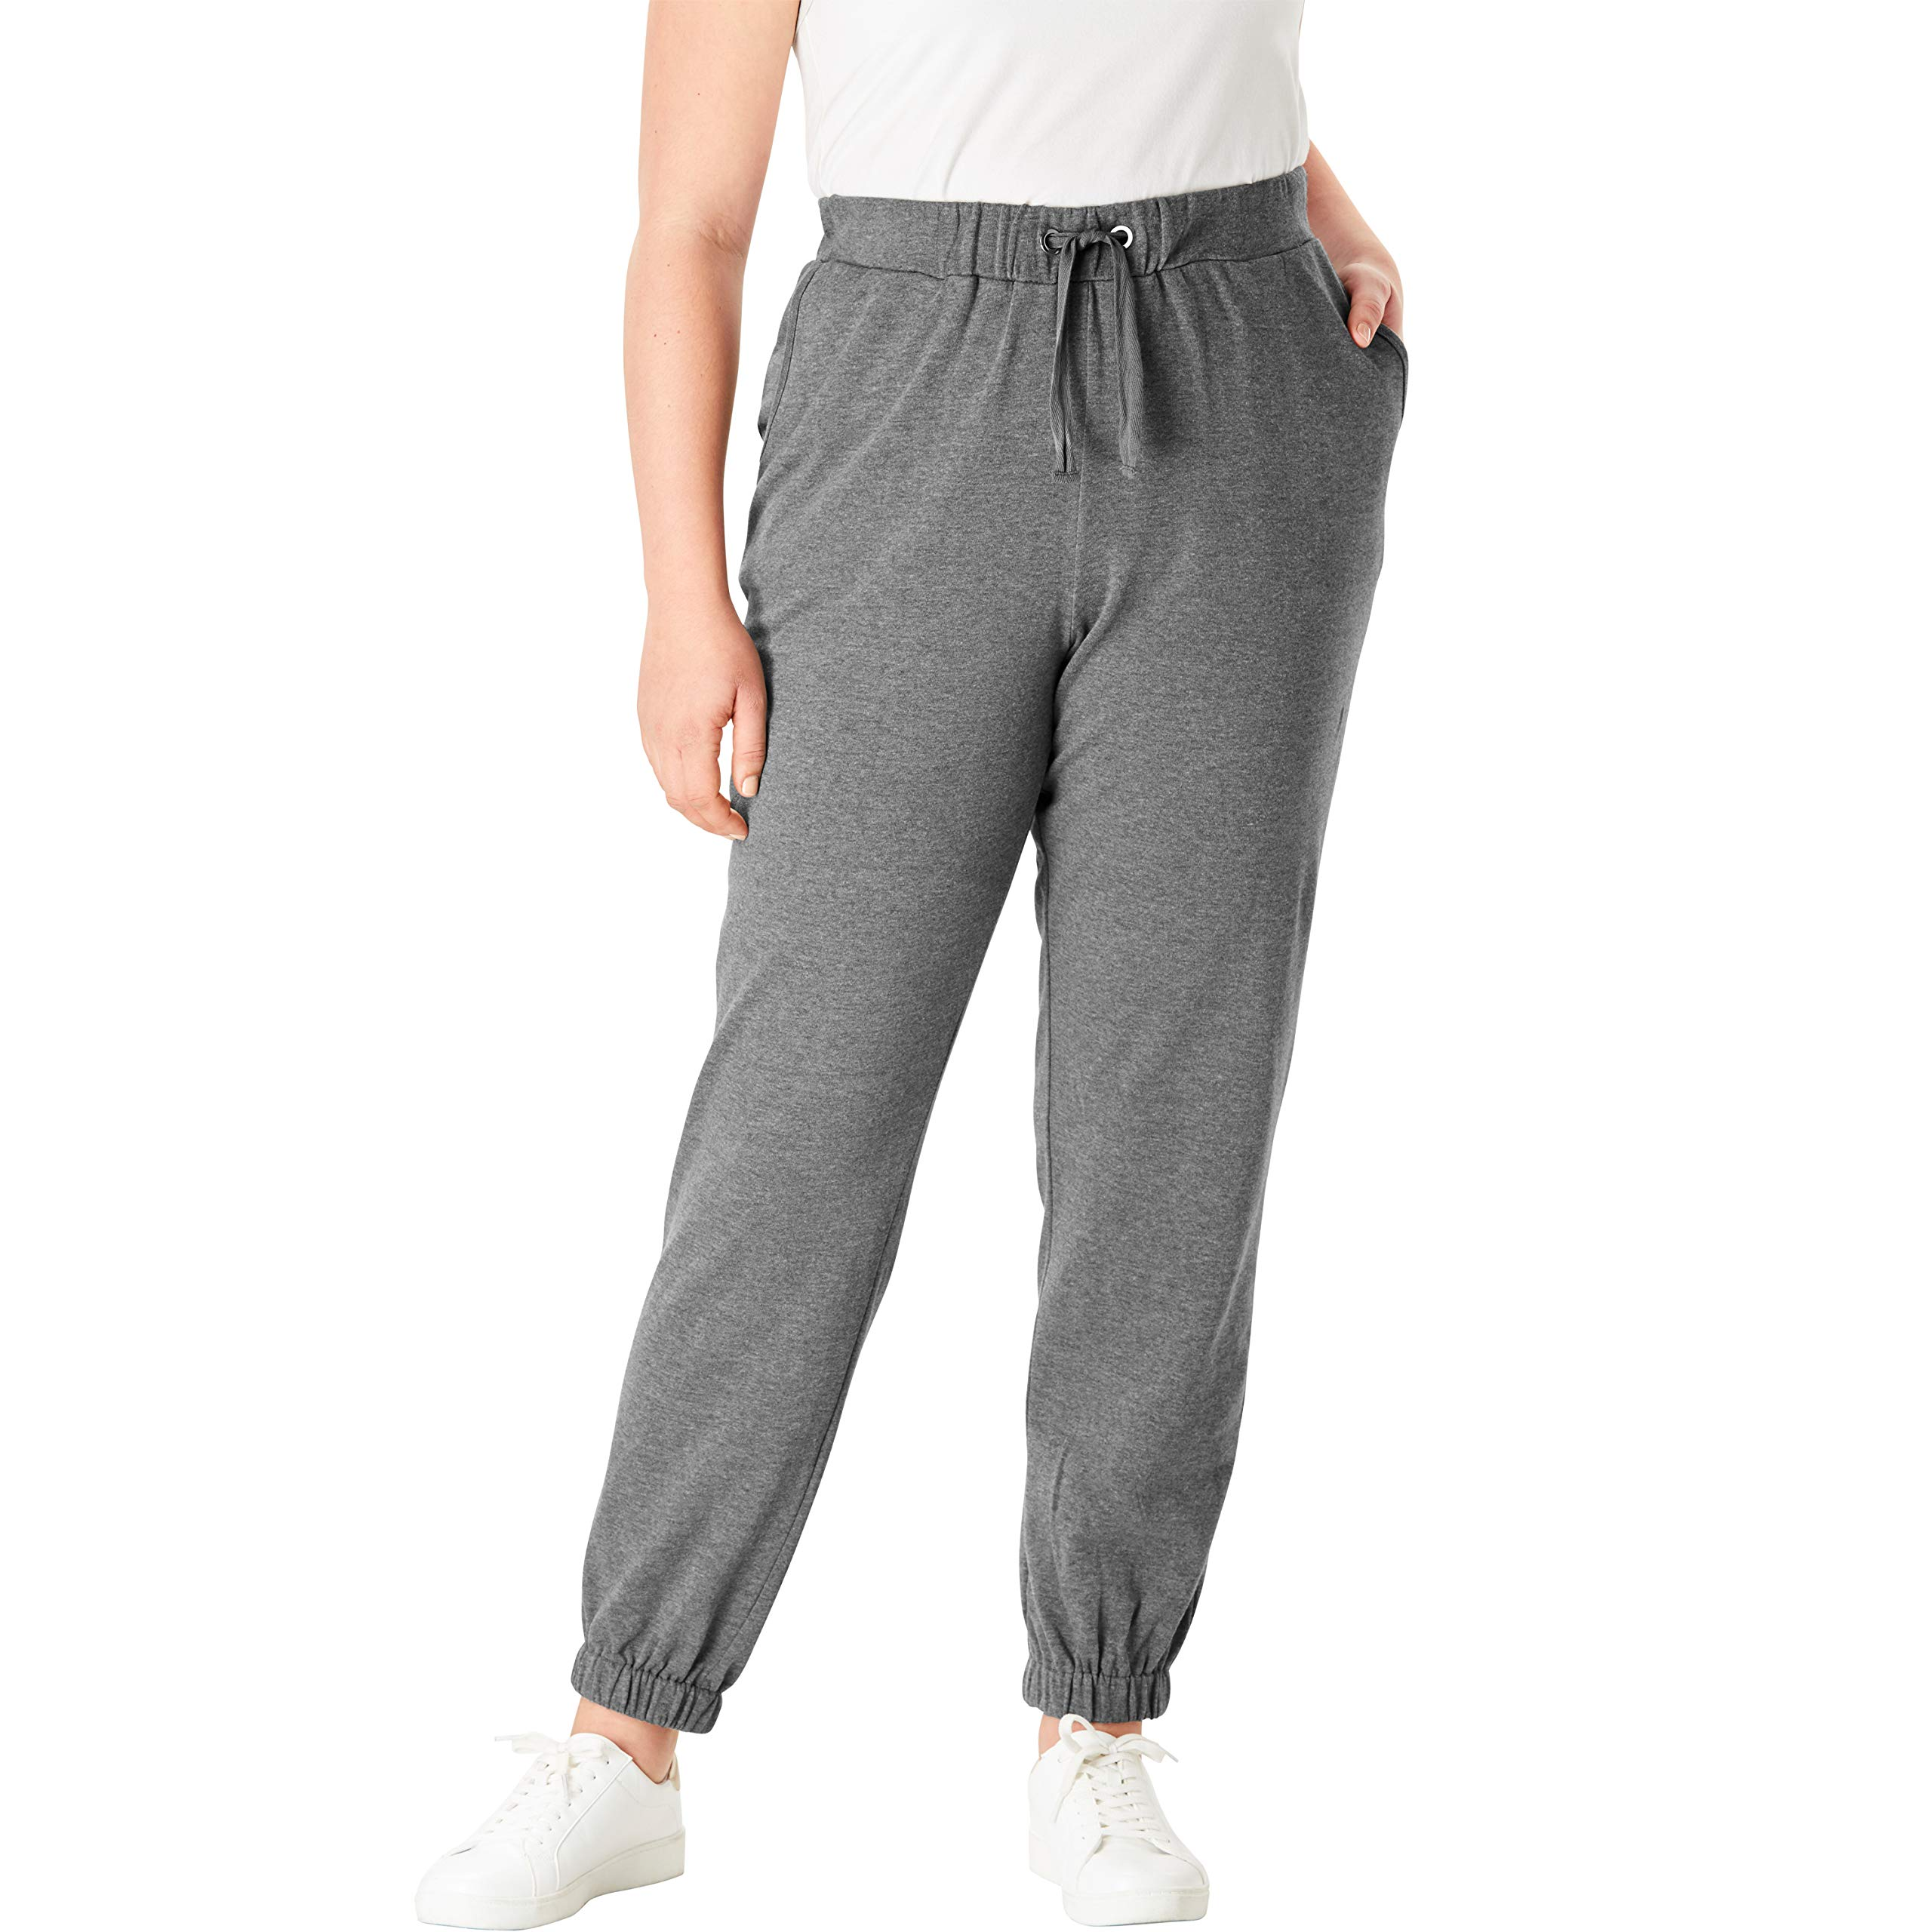 Roamans Women's Plus Size French Terry Jogger - Medium Heather Grey, 12 by Roamans